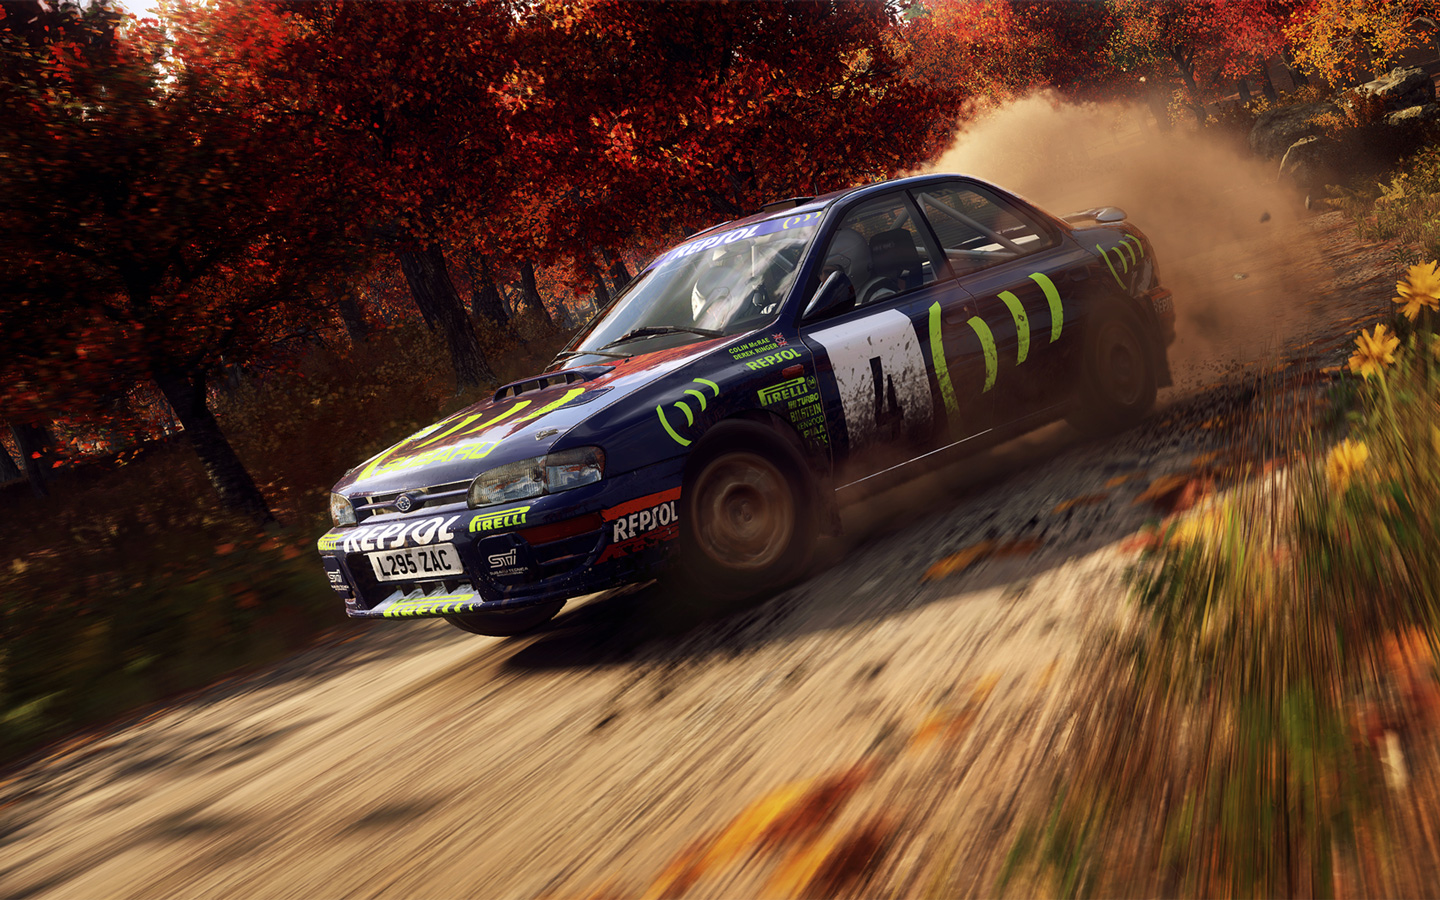 Dirt Rally 2.0 Wallpaper in 1440x900